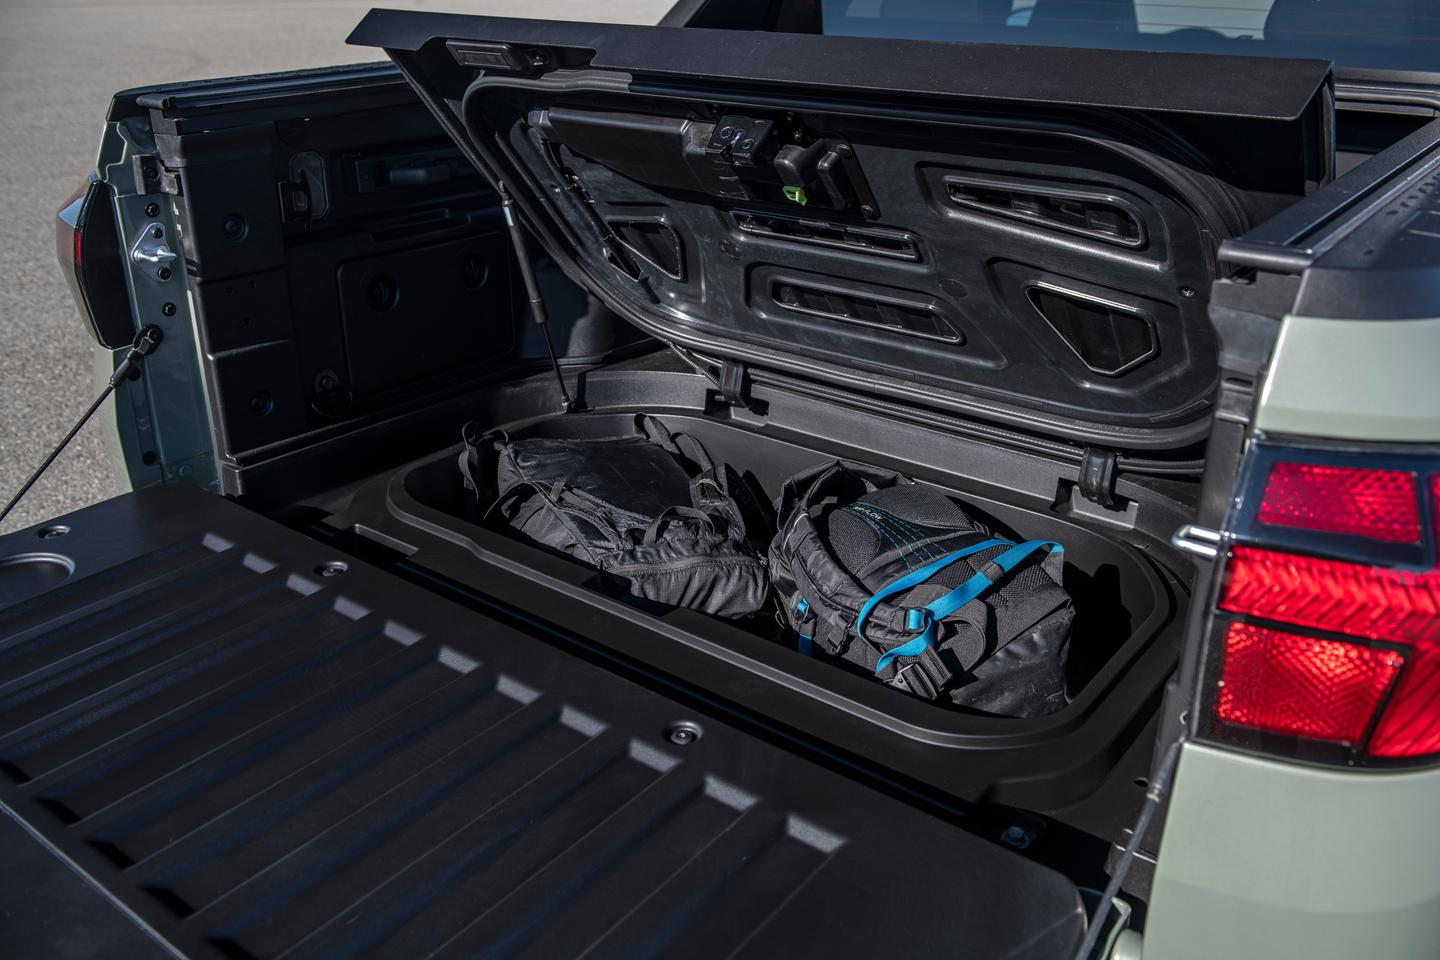 Under-bed storage allows for further expansion of the cargo area's capacity